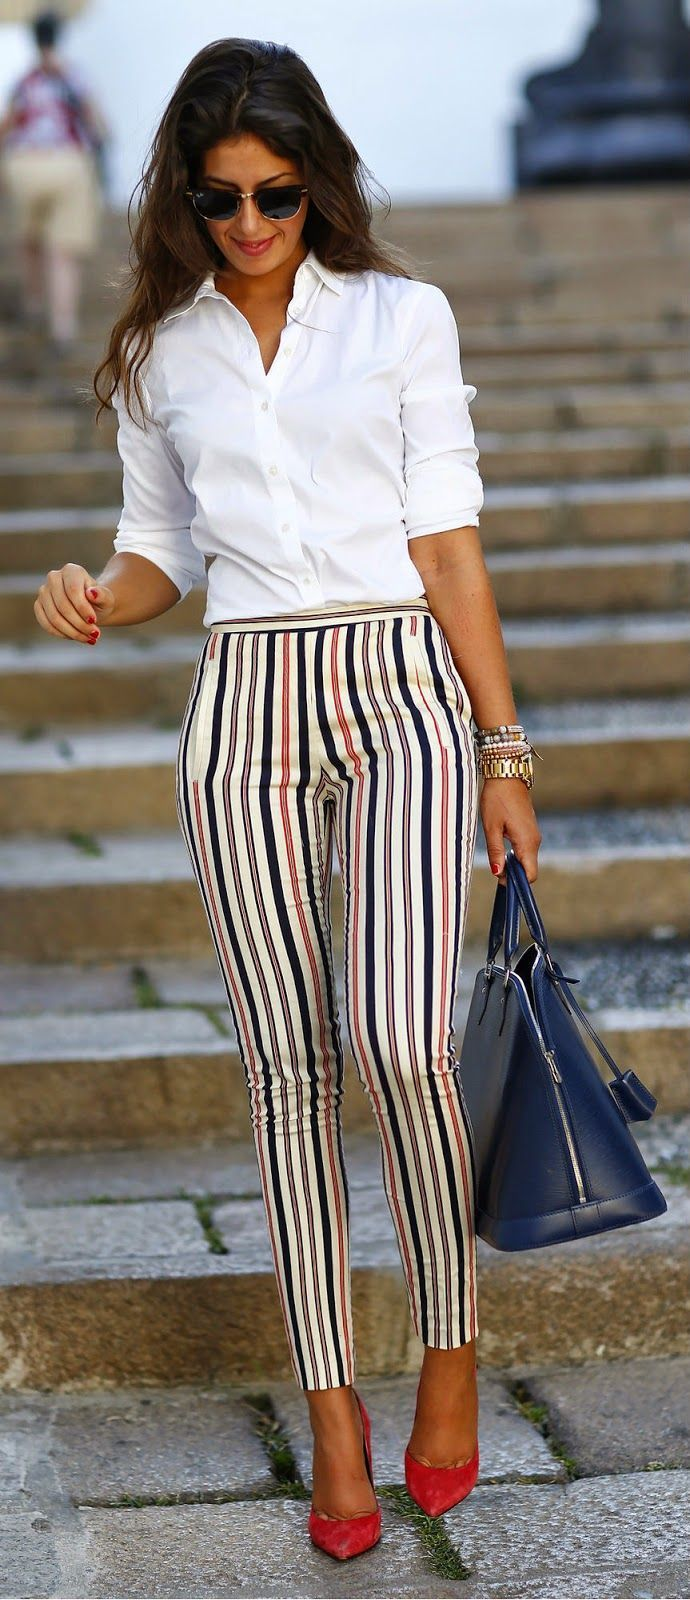 c5e1a9f8ac5 Elegant and stylish. Vertical striped pants